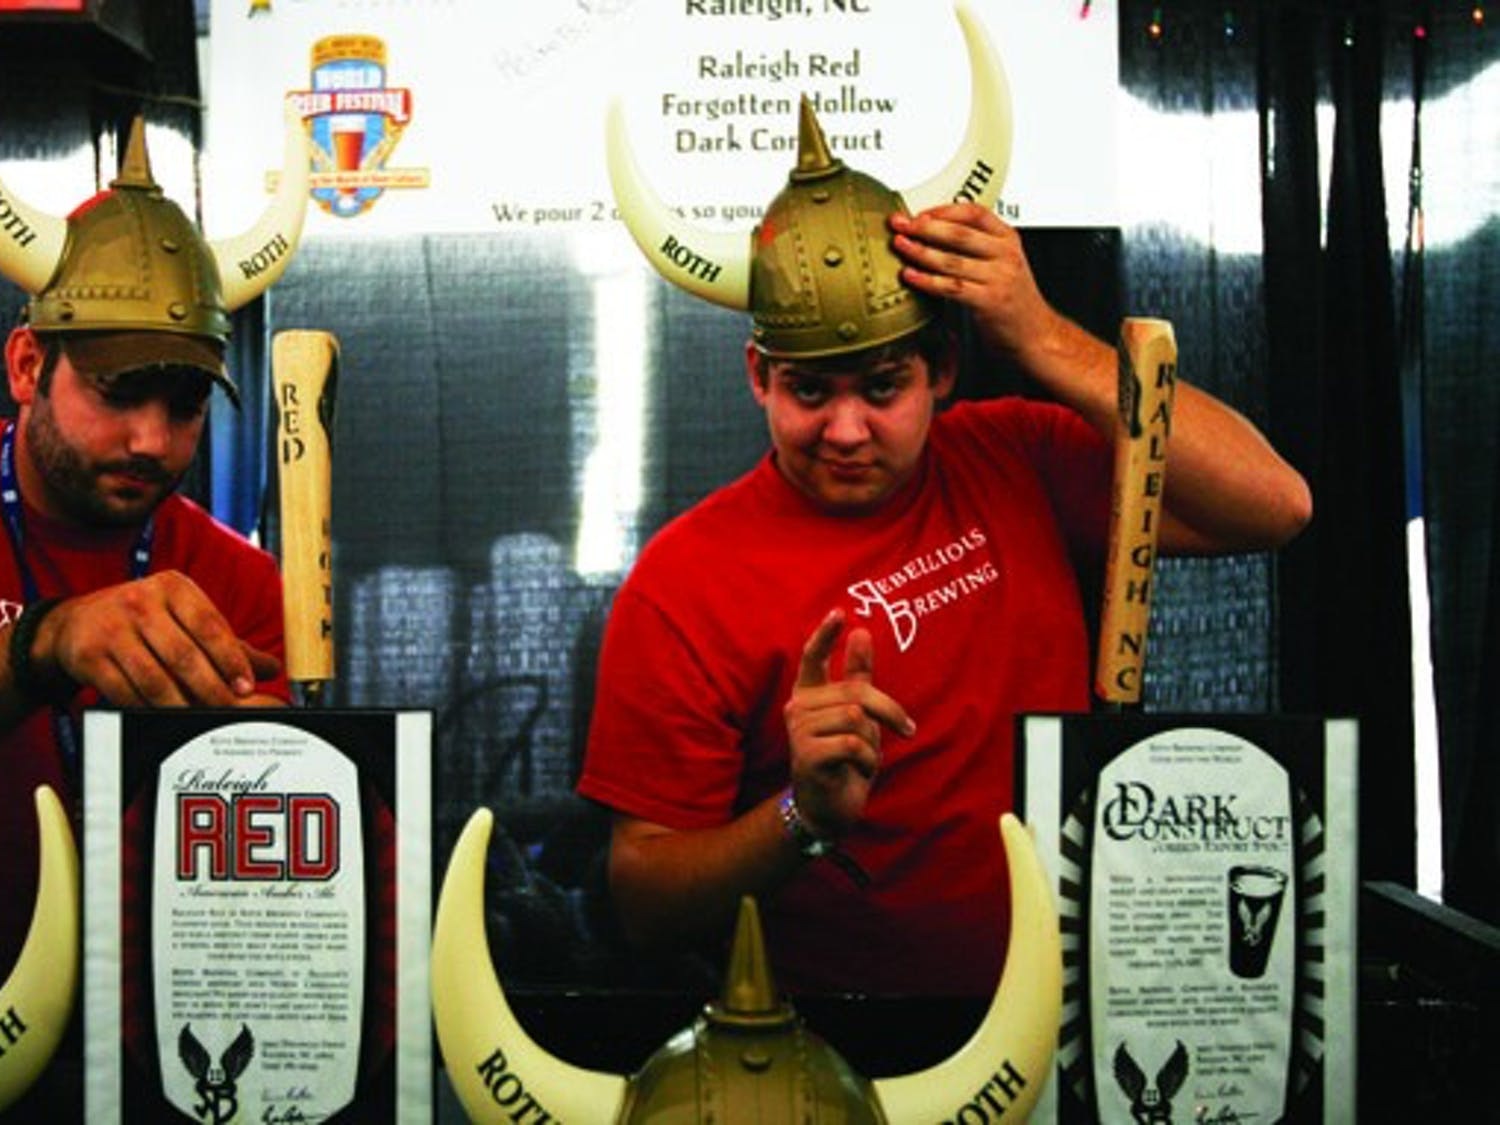 Roth Brewing operates a booth at the 16th annual World Beer Fest, held Saturday at Durham Bulls Athletic Park. More than 100 breweries from around the world participated.